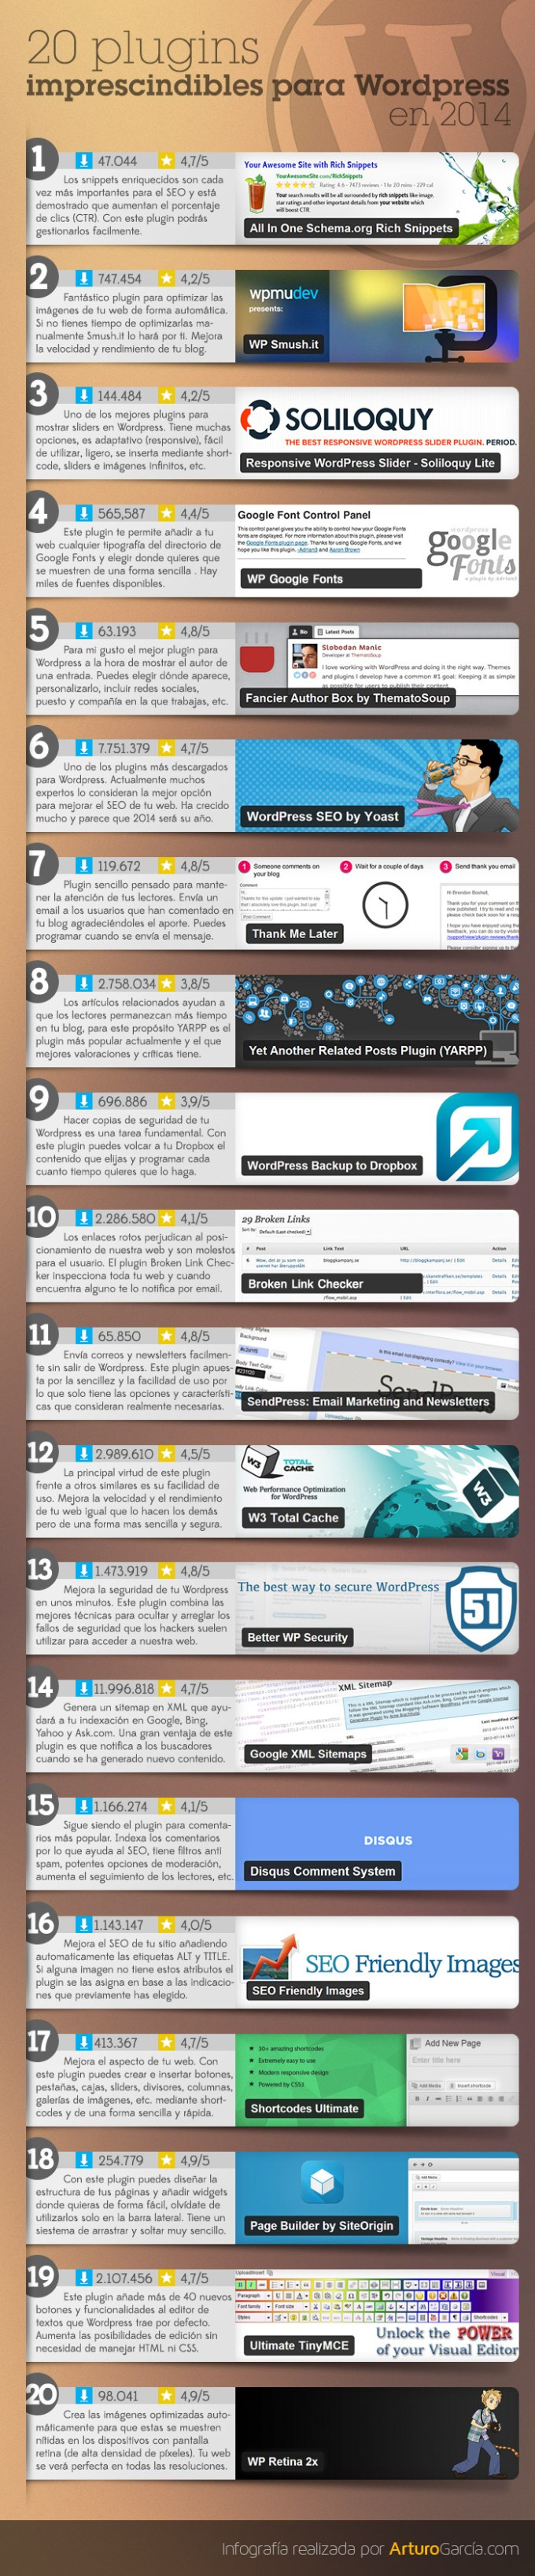 20-plugins-imprescindibles-para-wordpress-2014